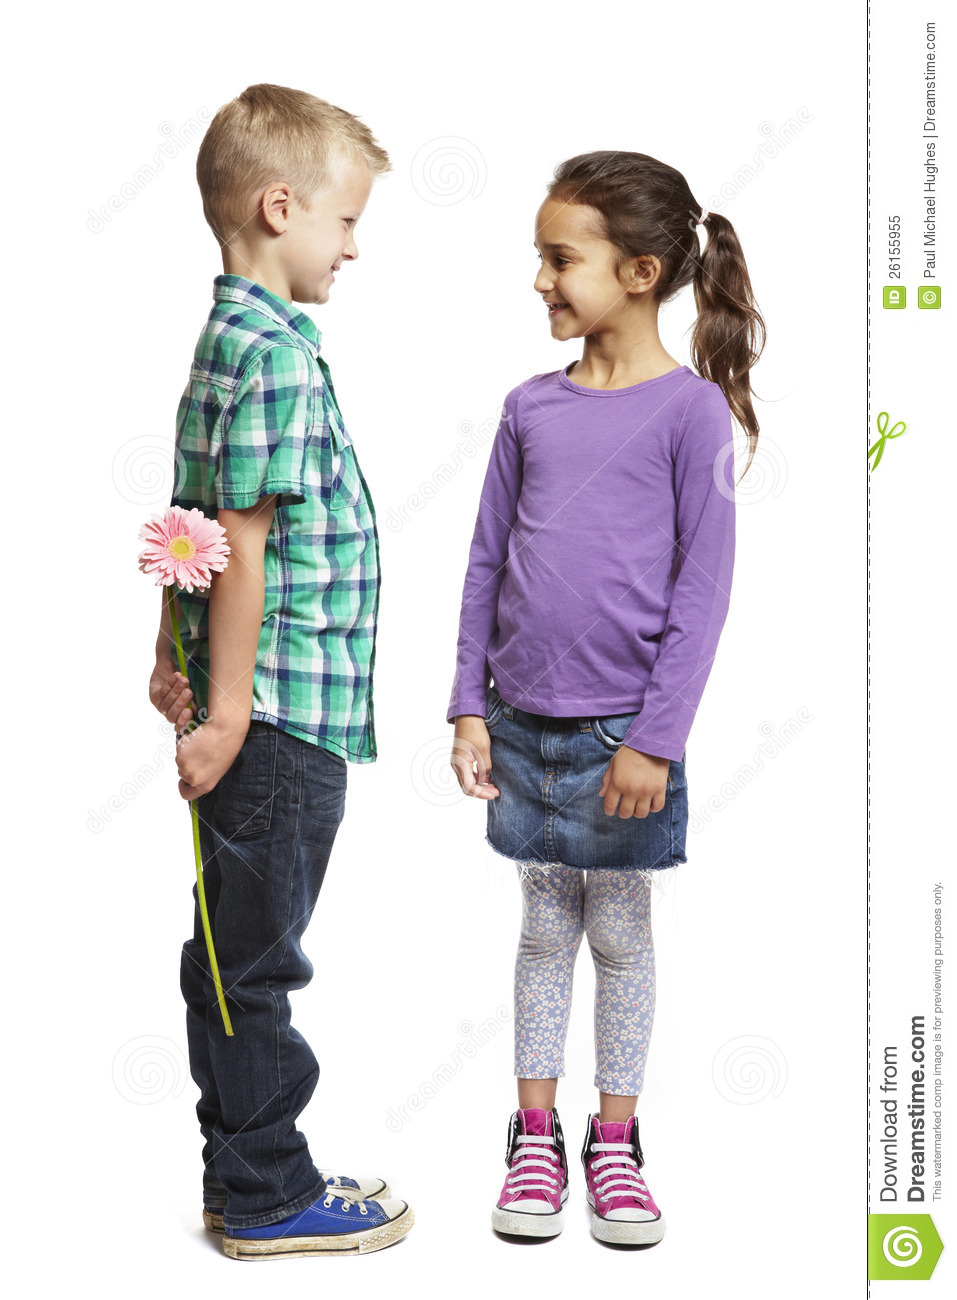 Boy And Girl Bedroom Decor: Boy Giving Pink Flower To Girl Stock Image